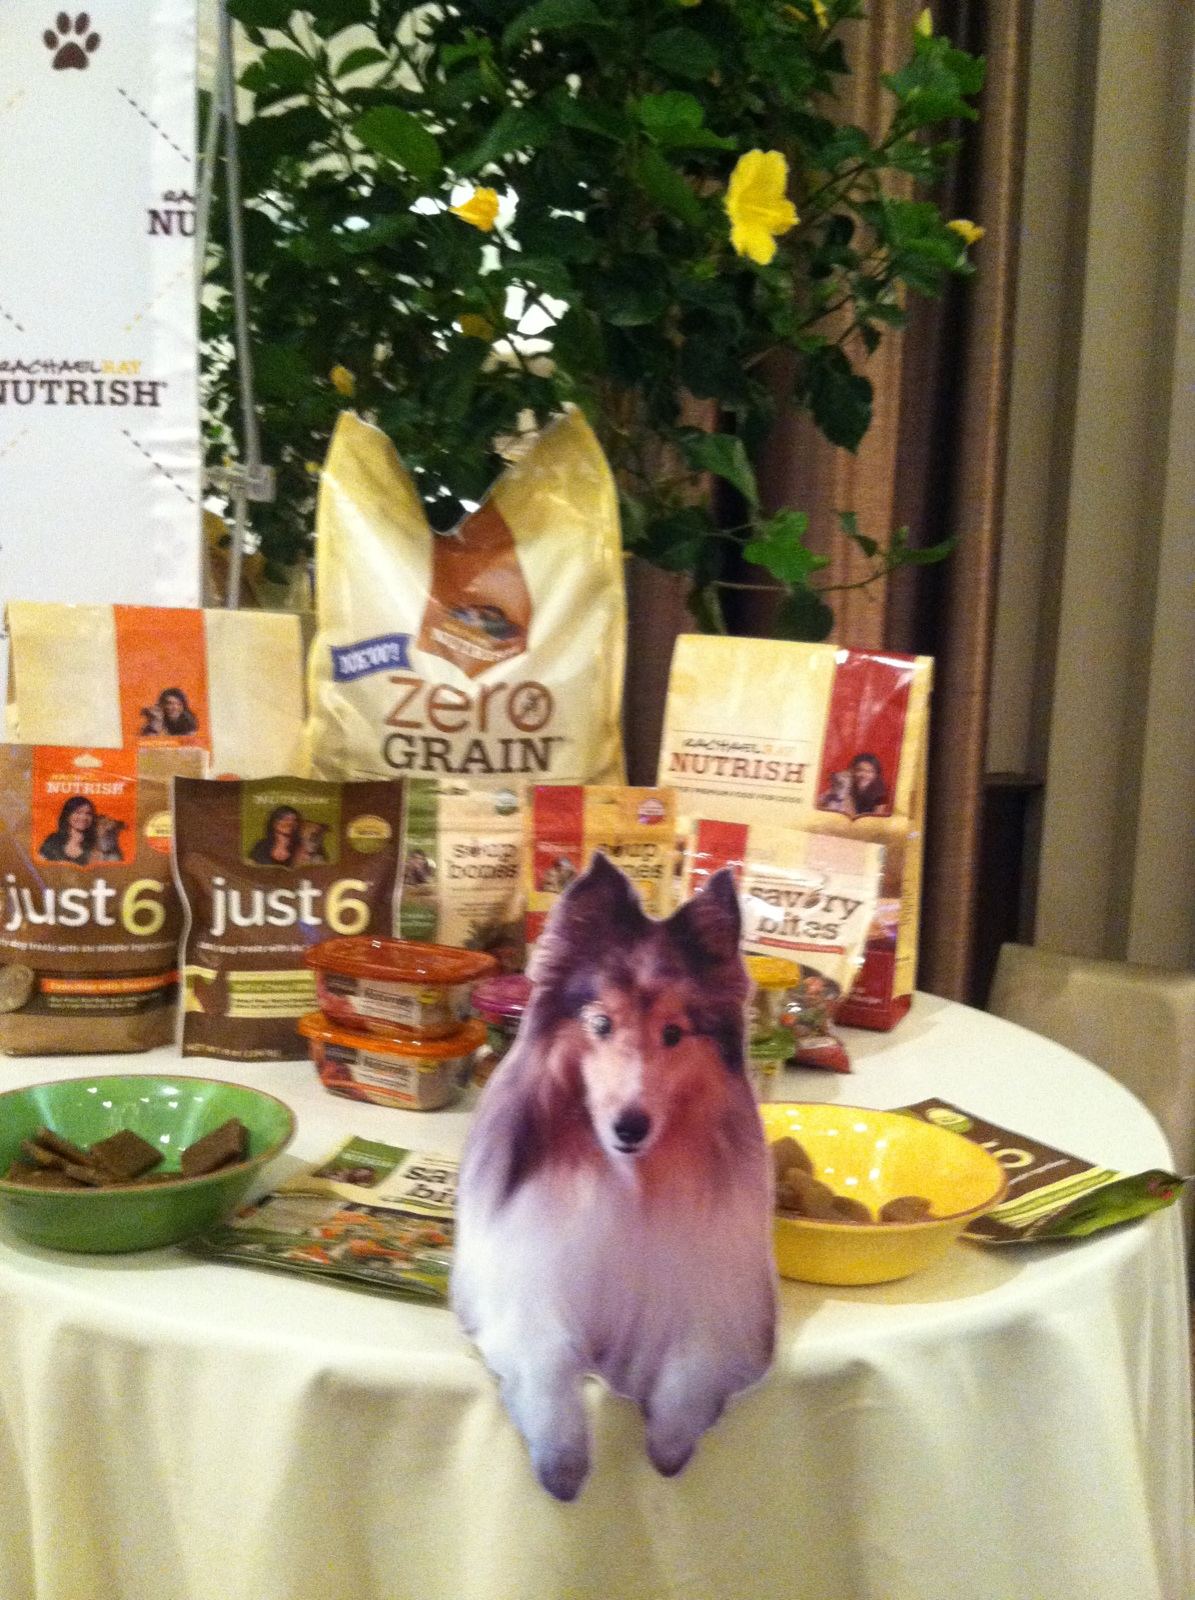 BlogPaws 2013 Dakota at Nutrish